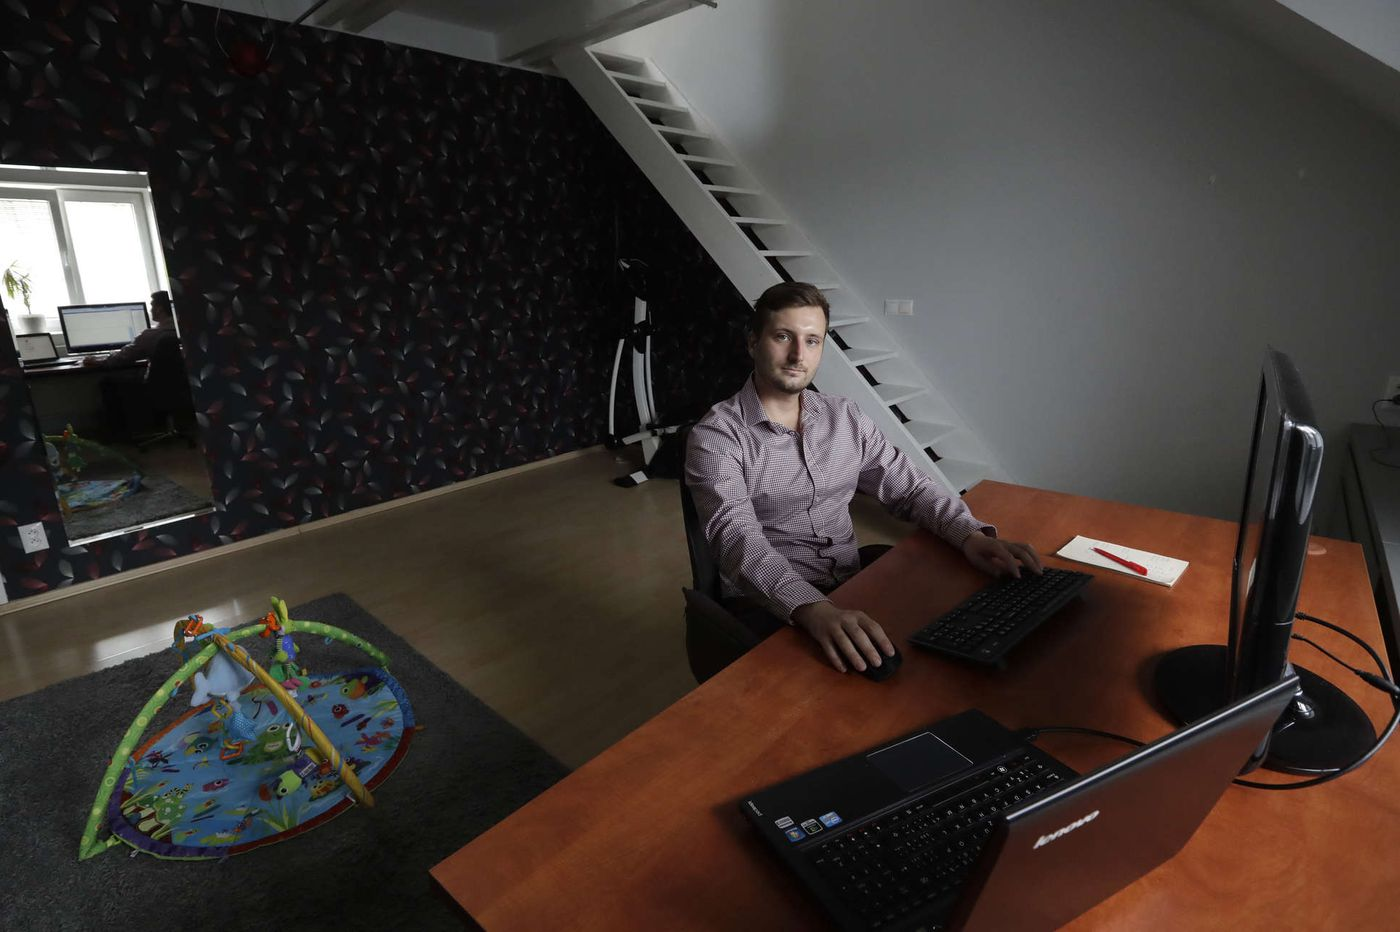 Slack, Skype, Zoom: Remote work is becoming the norm at some small firms